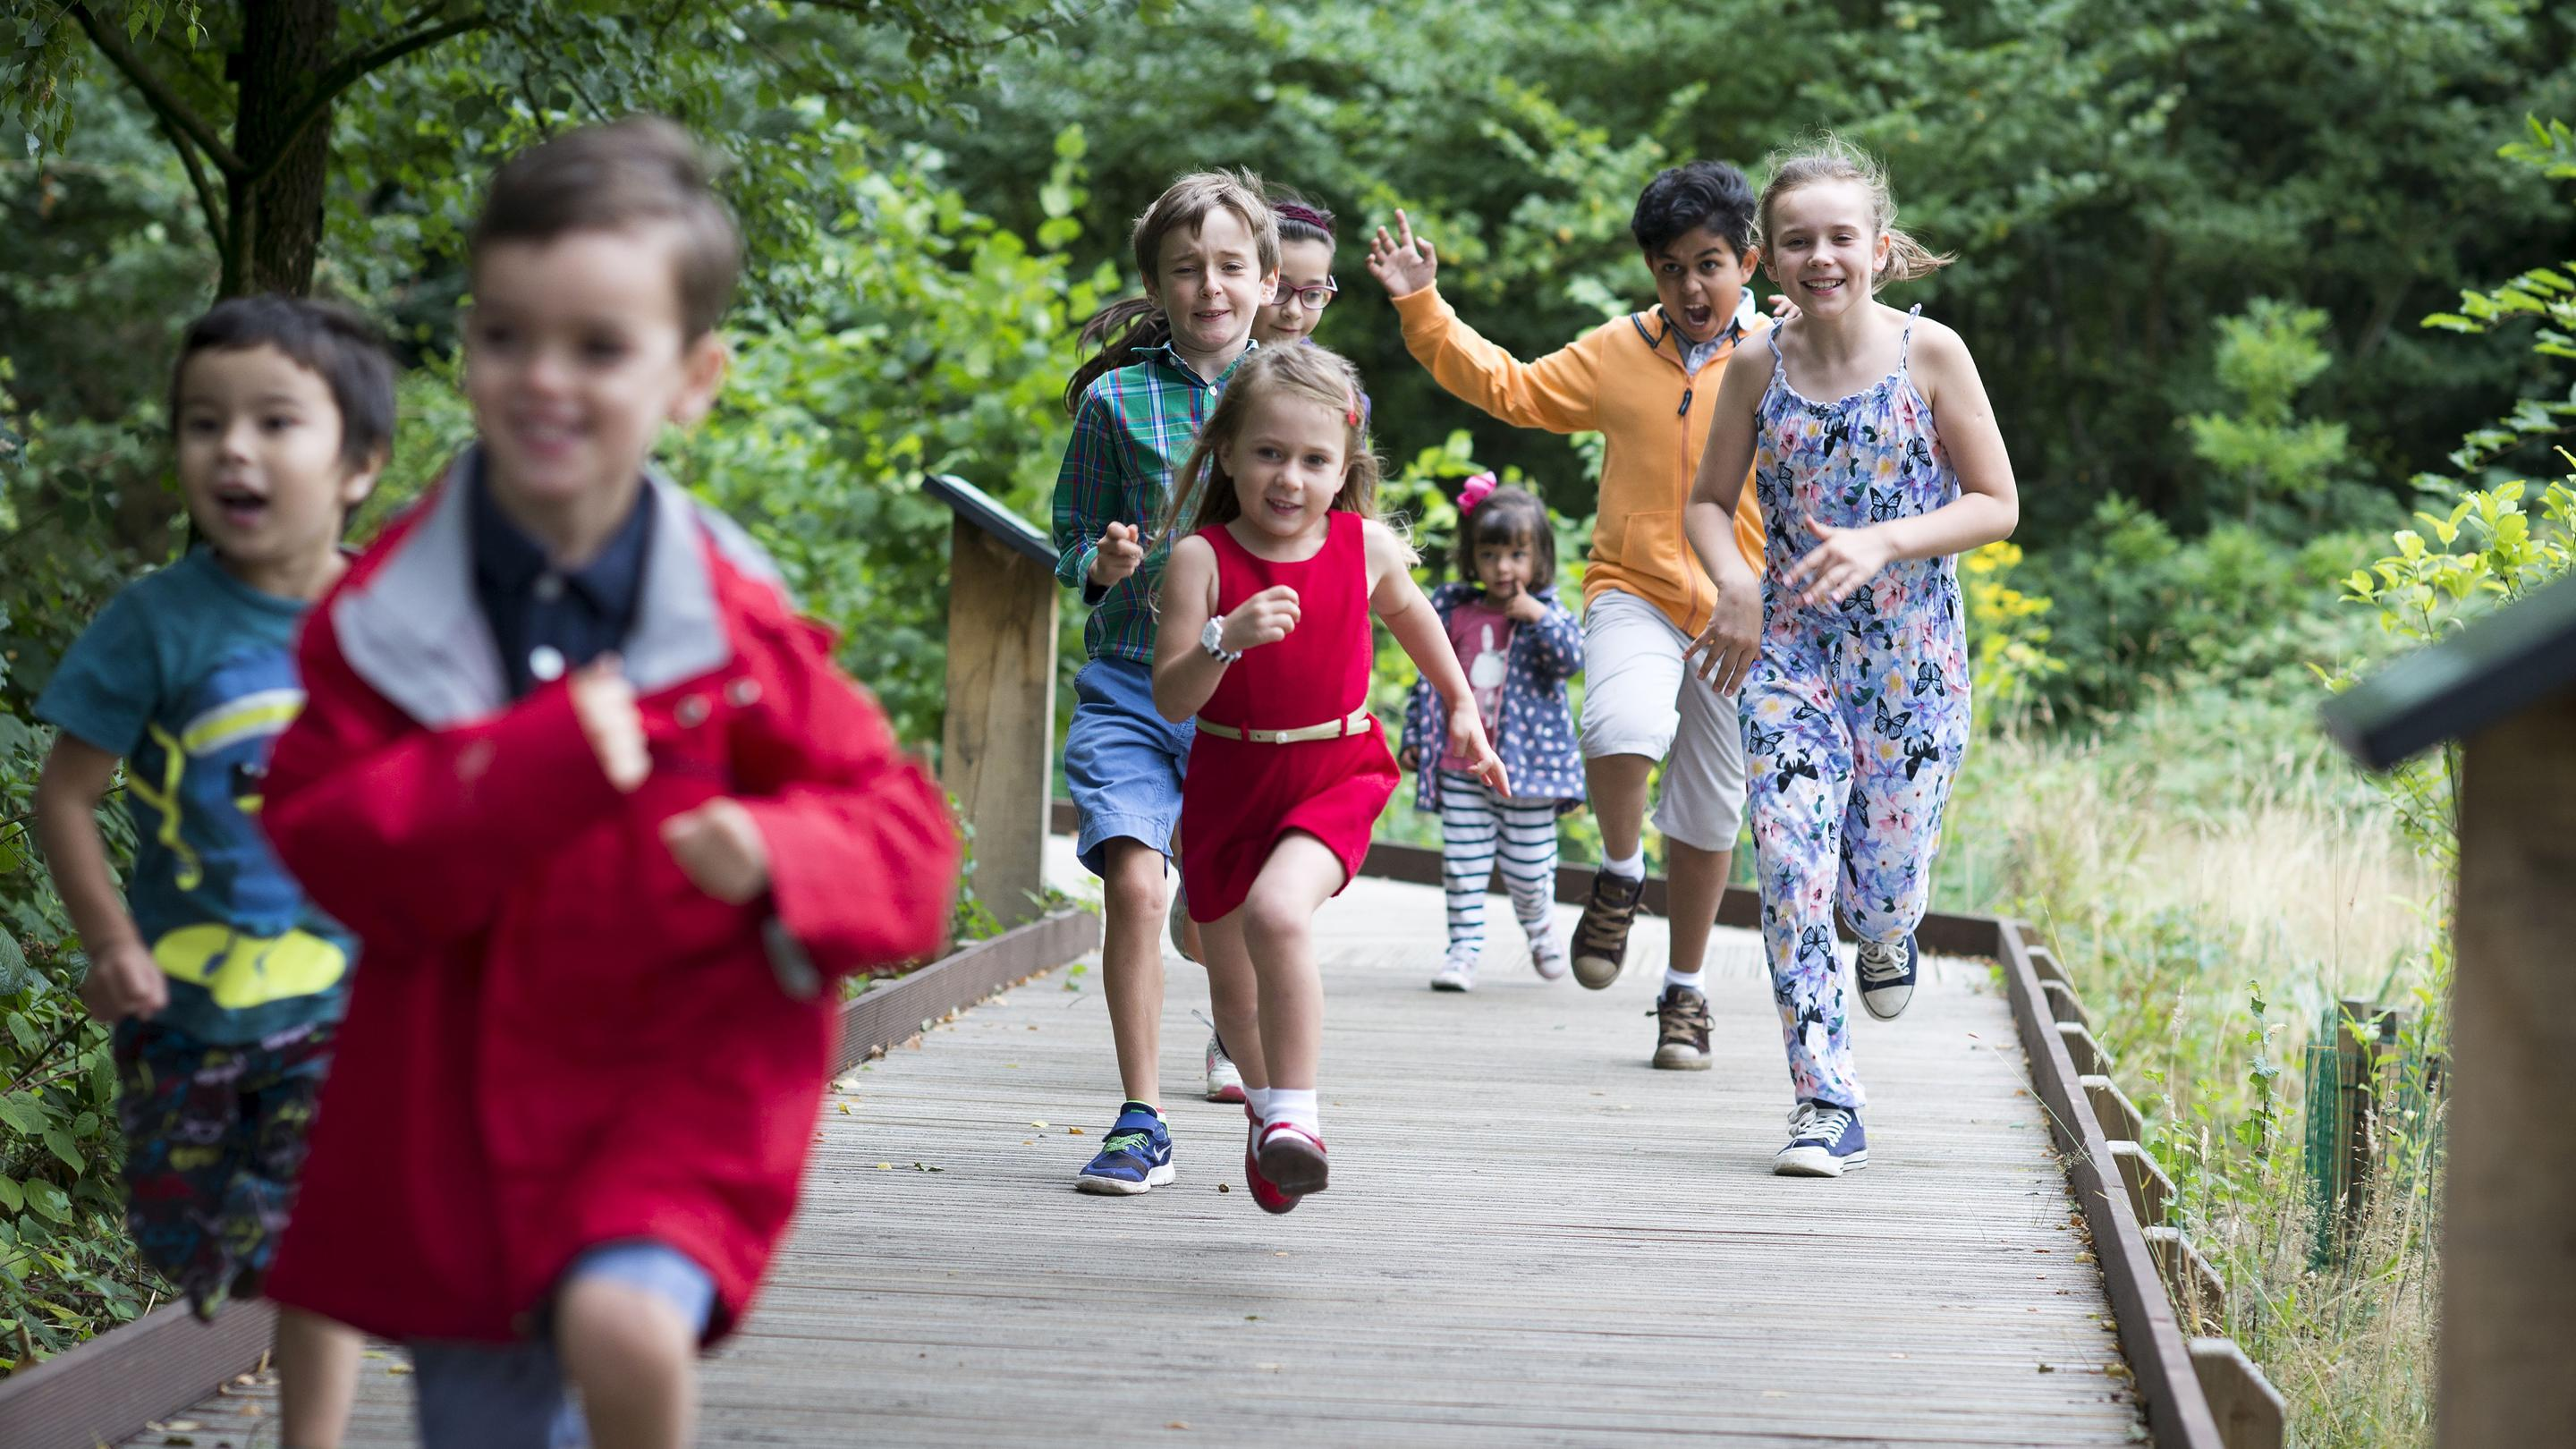 Children playing at Kew Gardens